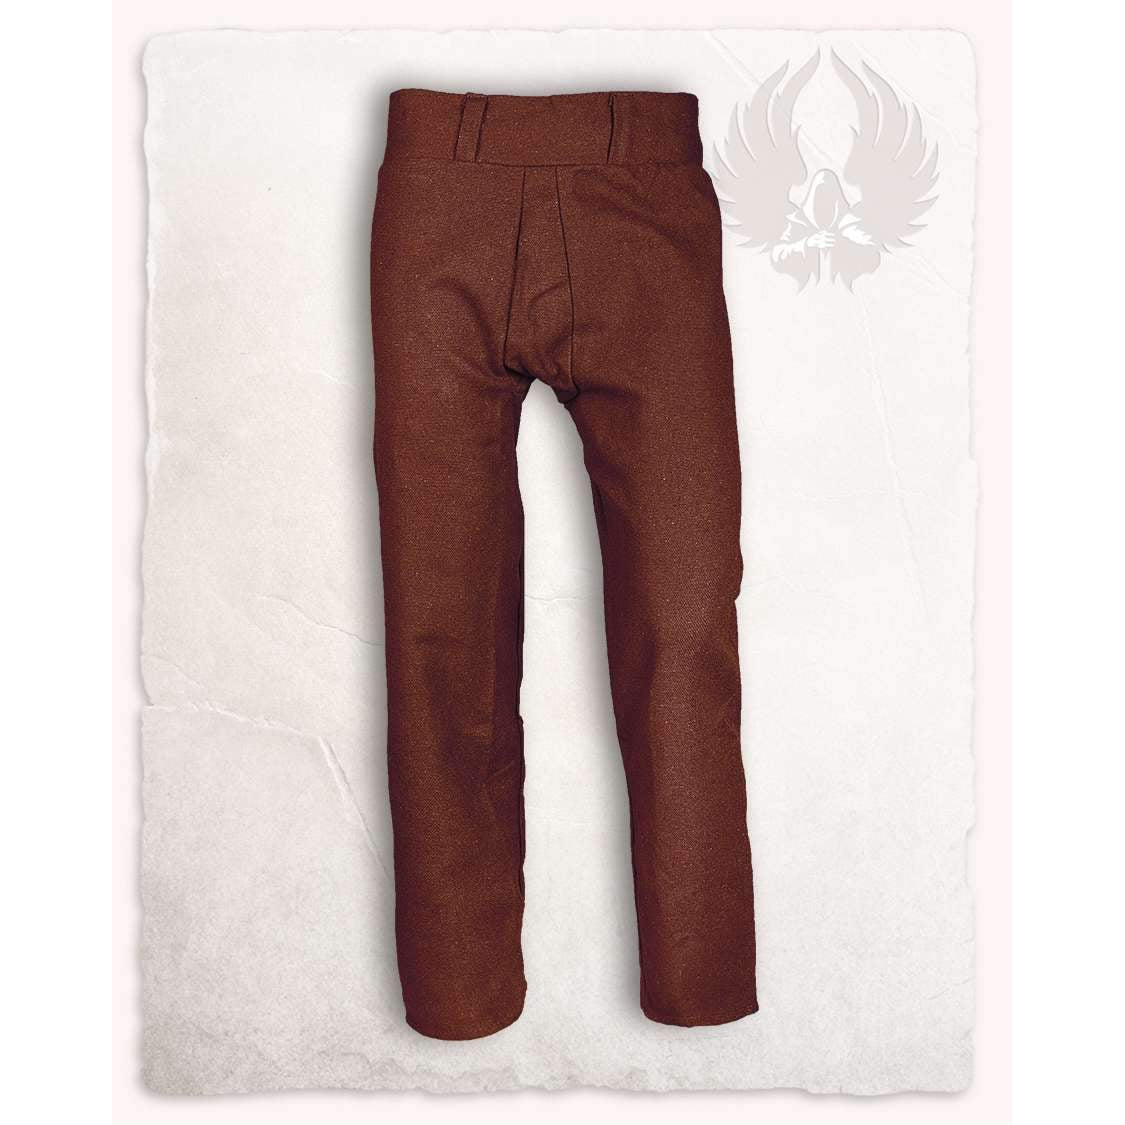 Ranulf Thorsberg trousers